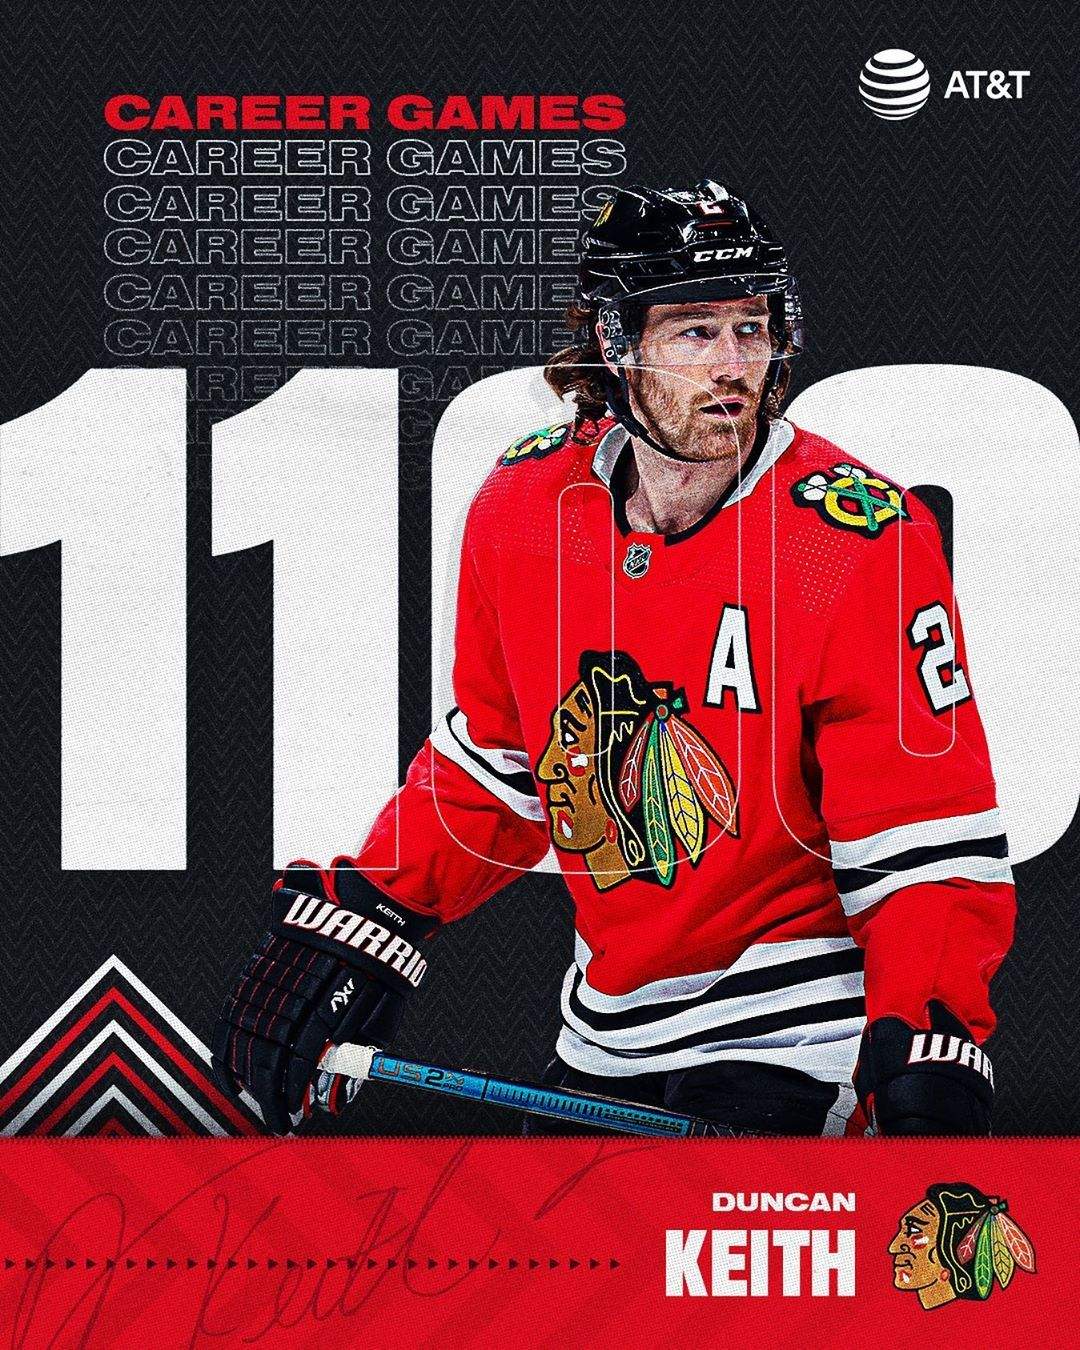 Chicago Blackhawks On Instagram Congrats To Duncan Keith On Game No 1 100 Chicago Blackhawks Hockey Blackhawks Chicago Blackhawks